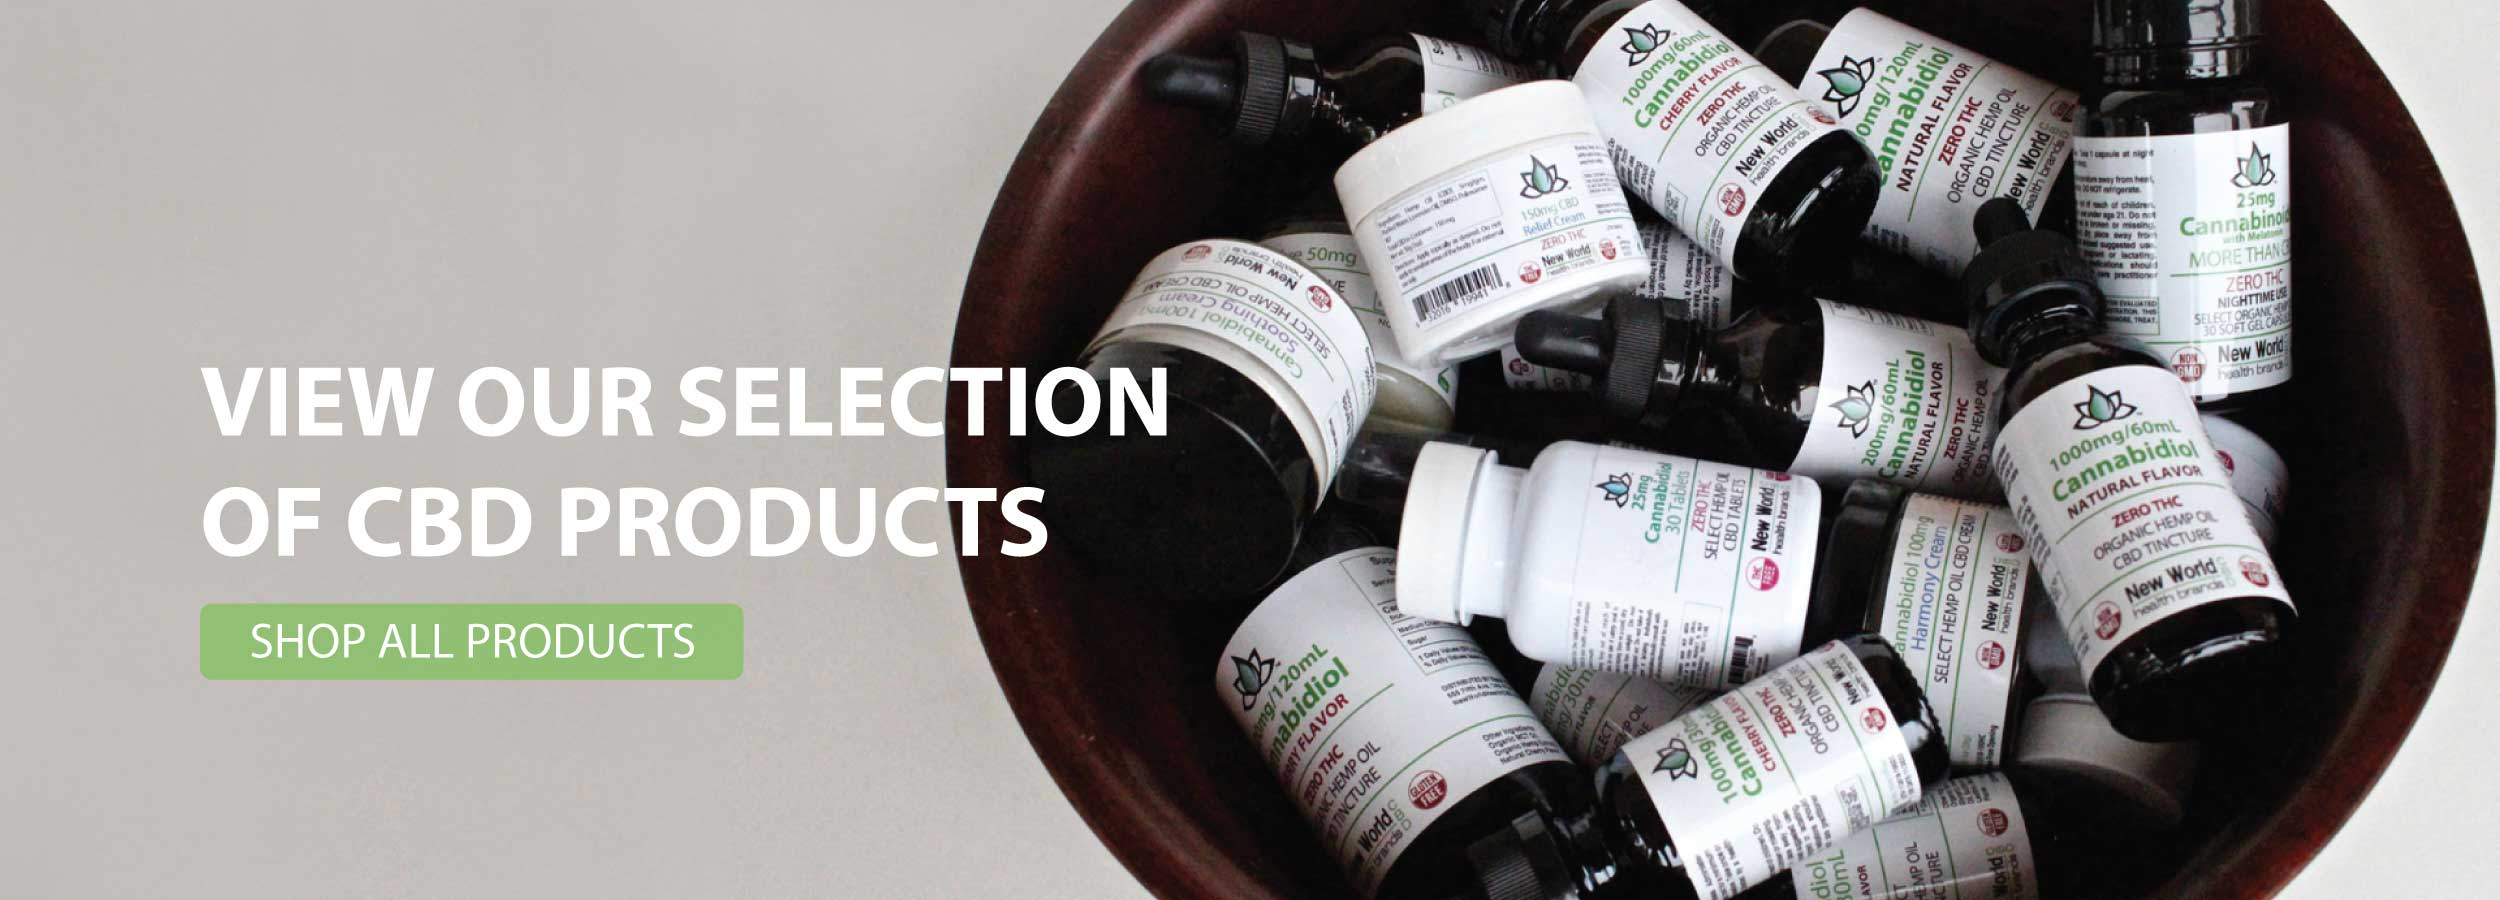 View our selection of CBD products